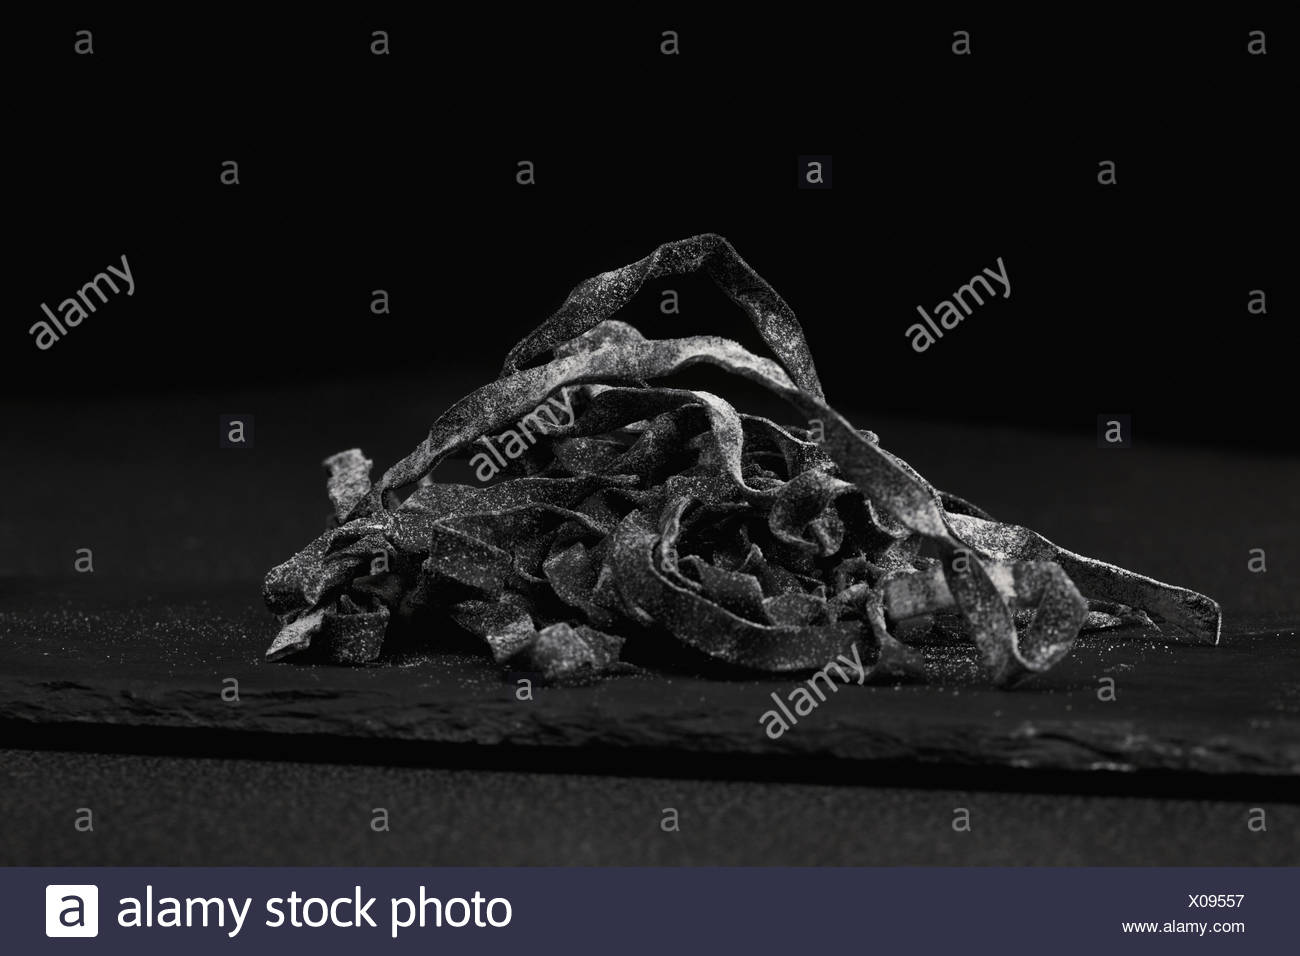 Black noodles in a darkness - Stock Image